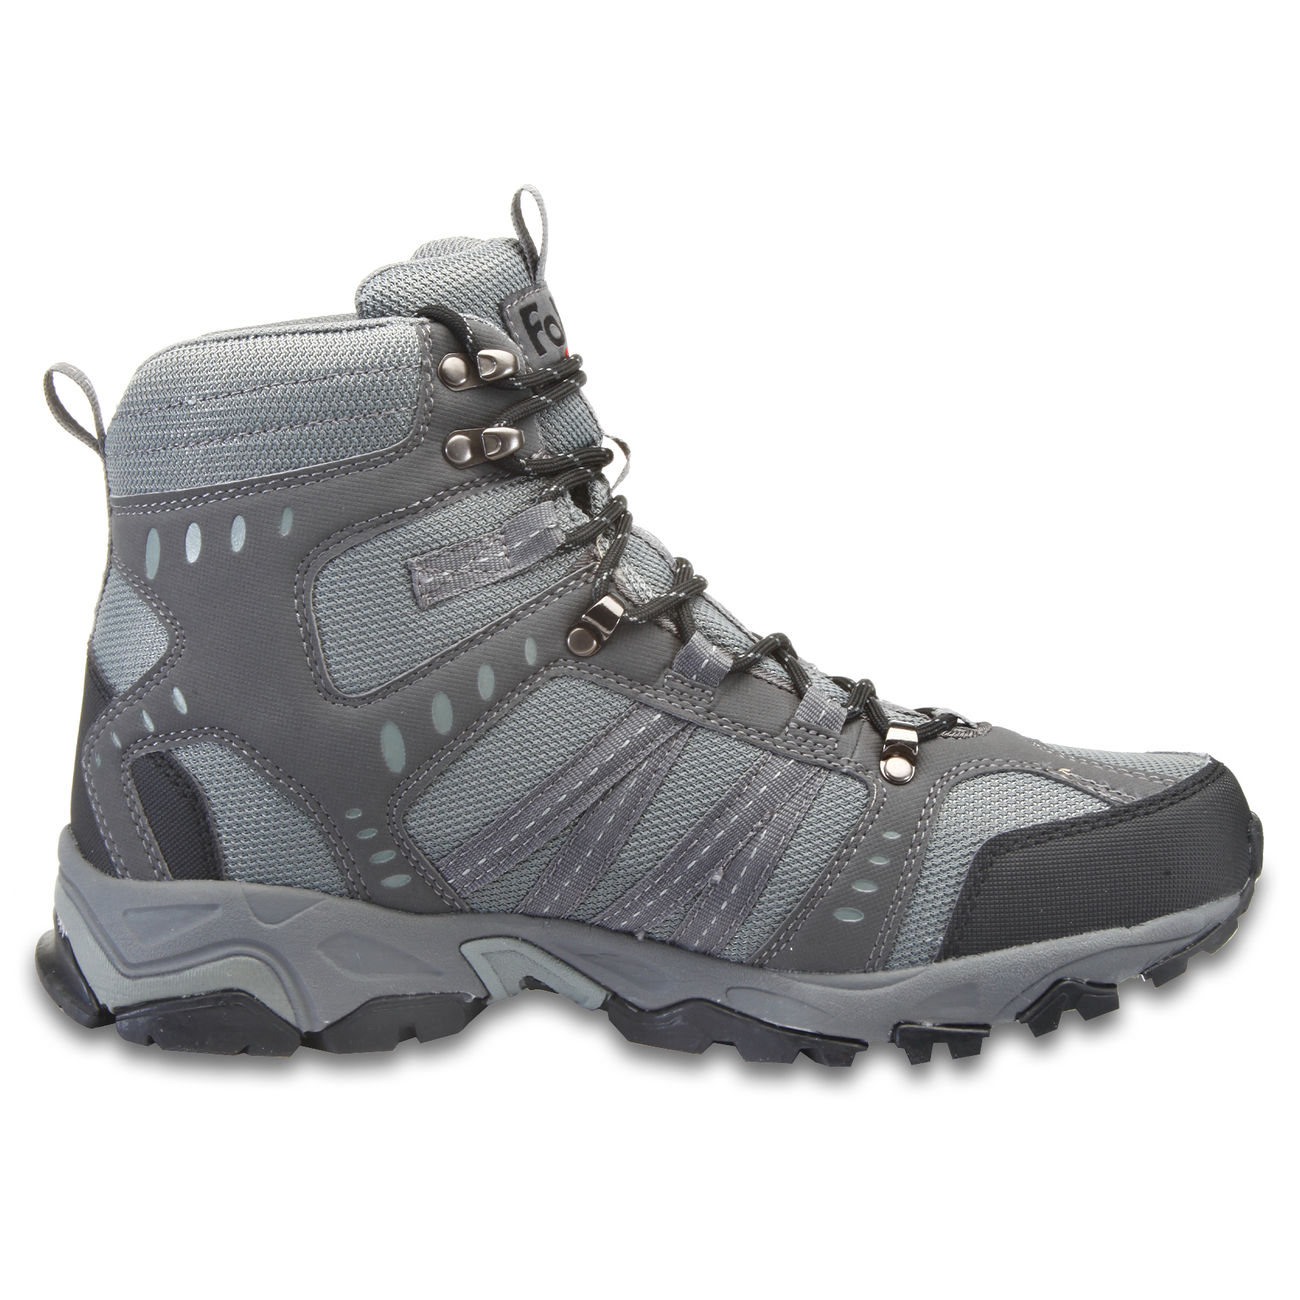 Fox Outdoor Trekkingschuh Mountain High grau 5